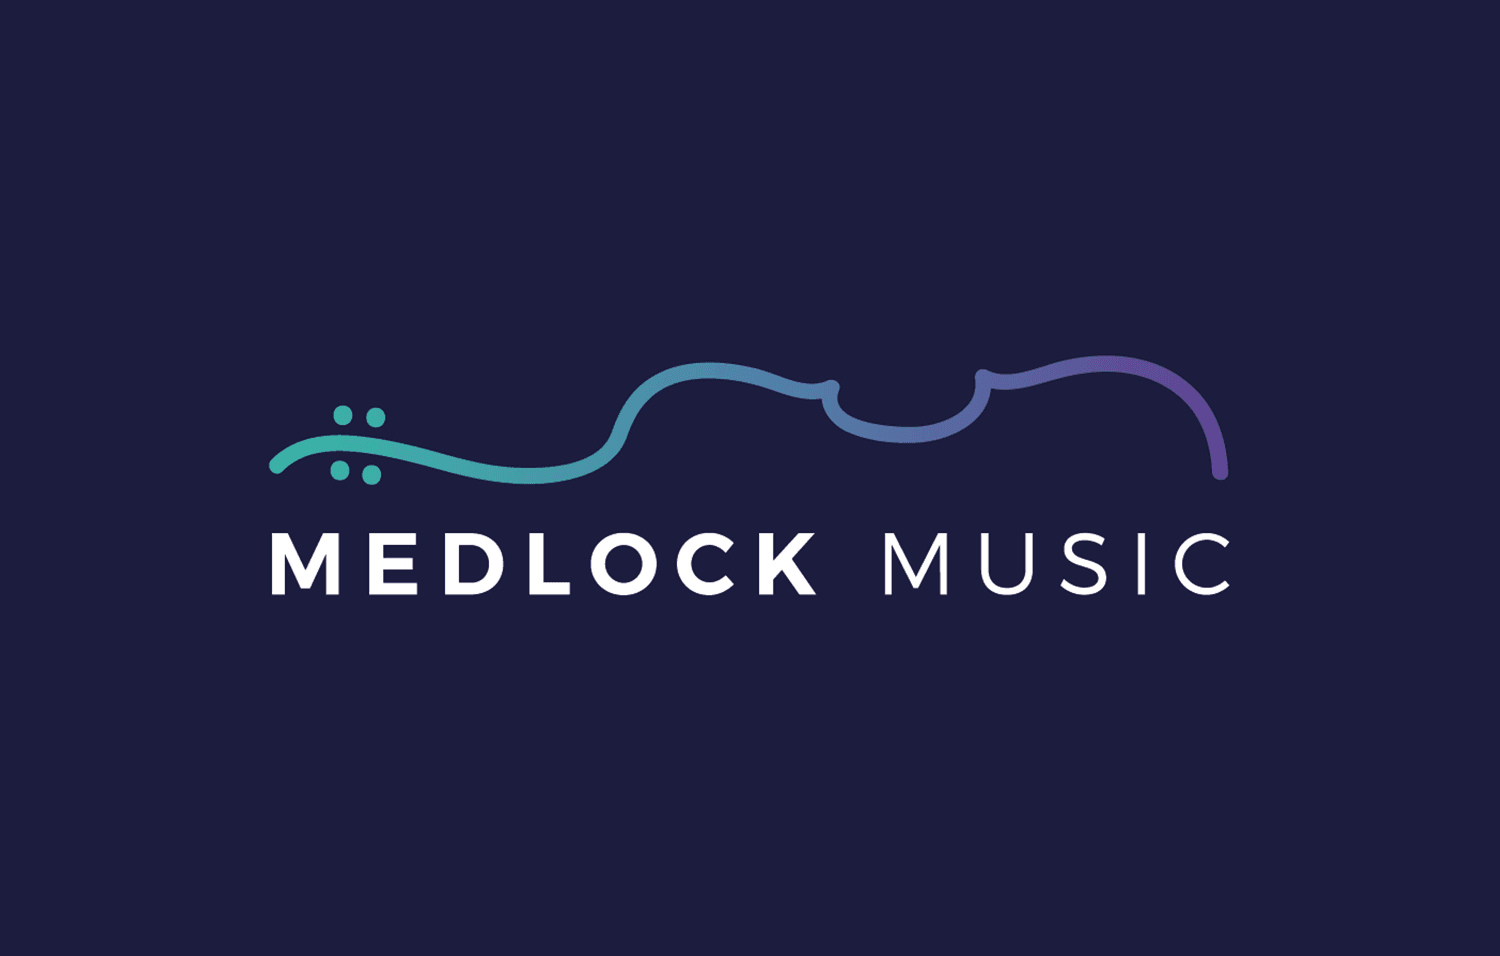 medlock musica logo explanation